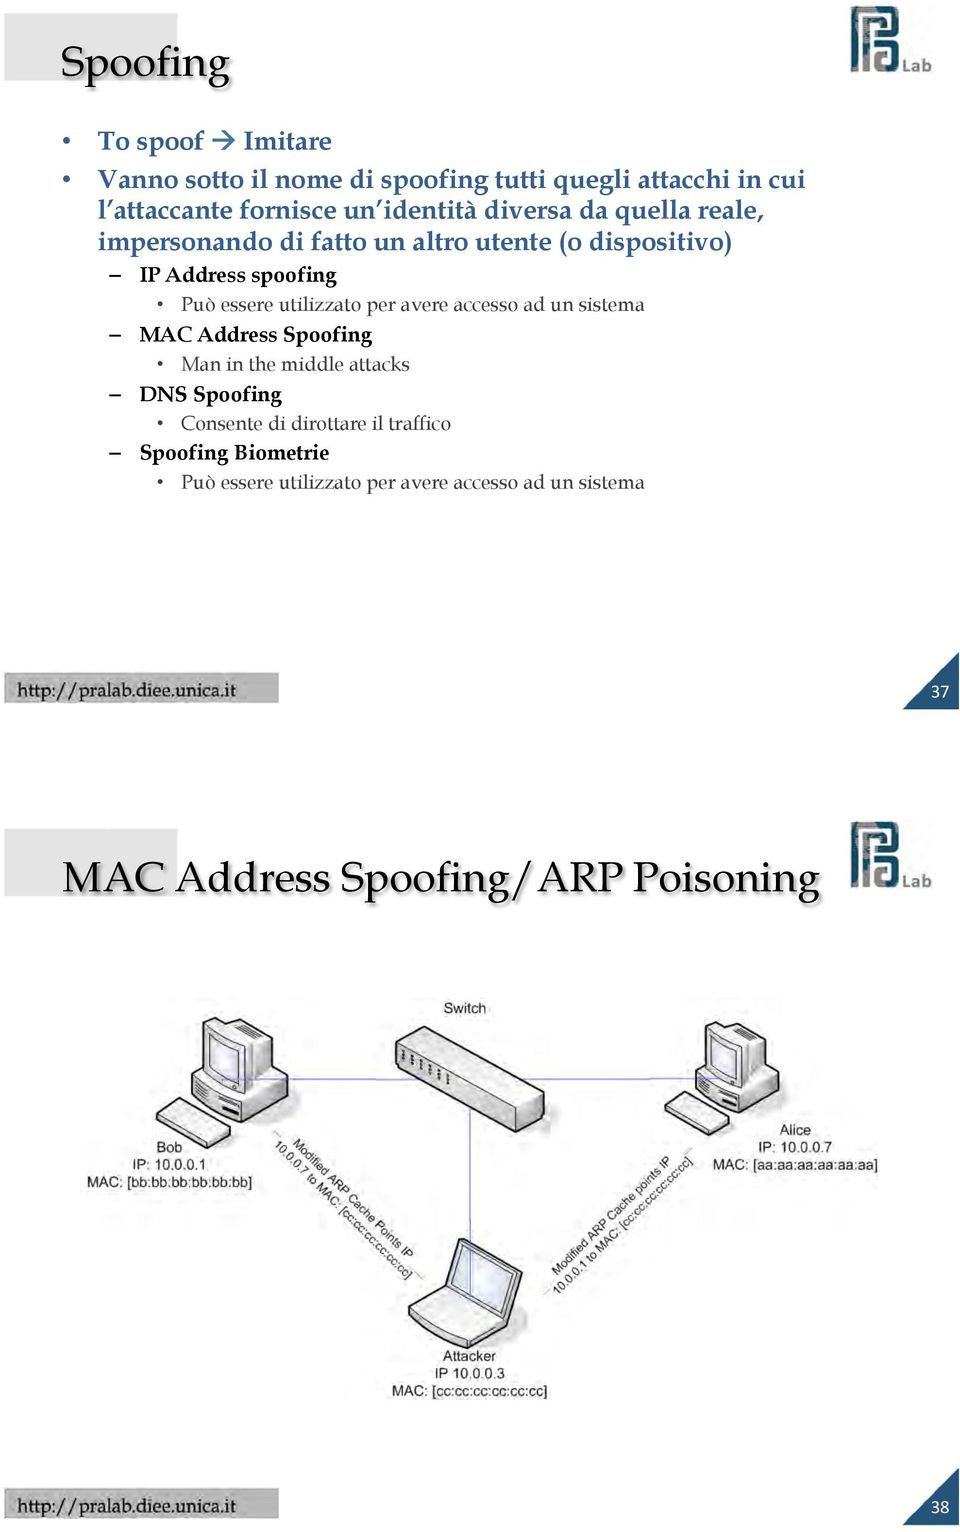 utilizzato per avere accesso ad un sistema MAC Address Spoofing Man in the middle attacks DNS Spoofing Consente di